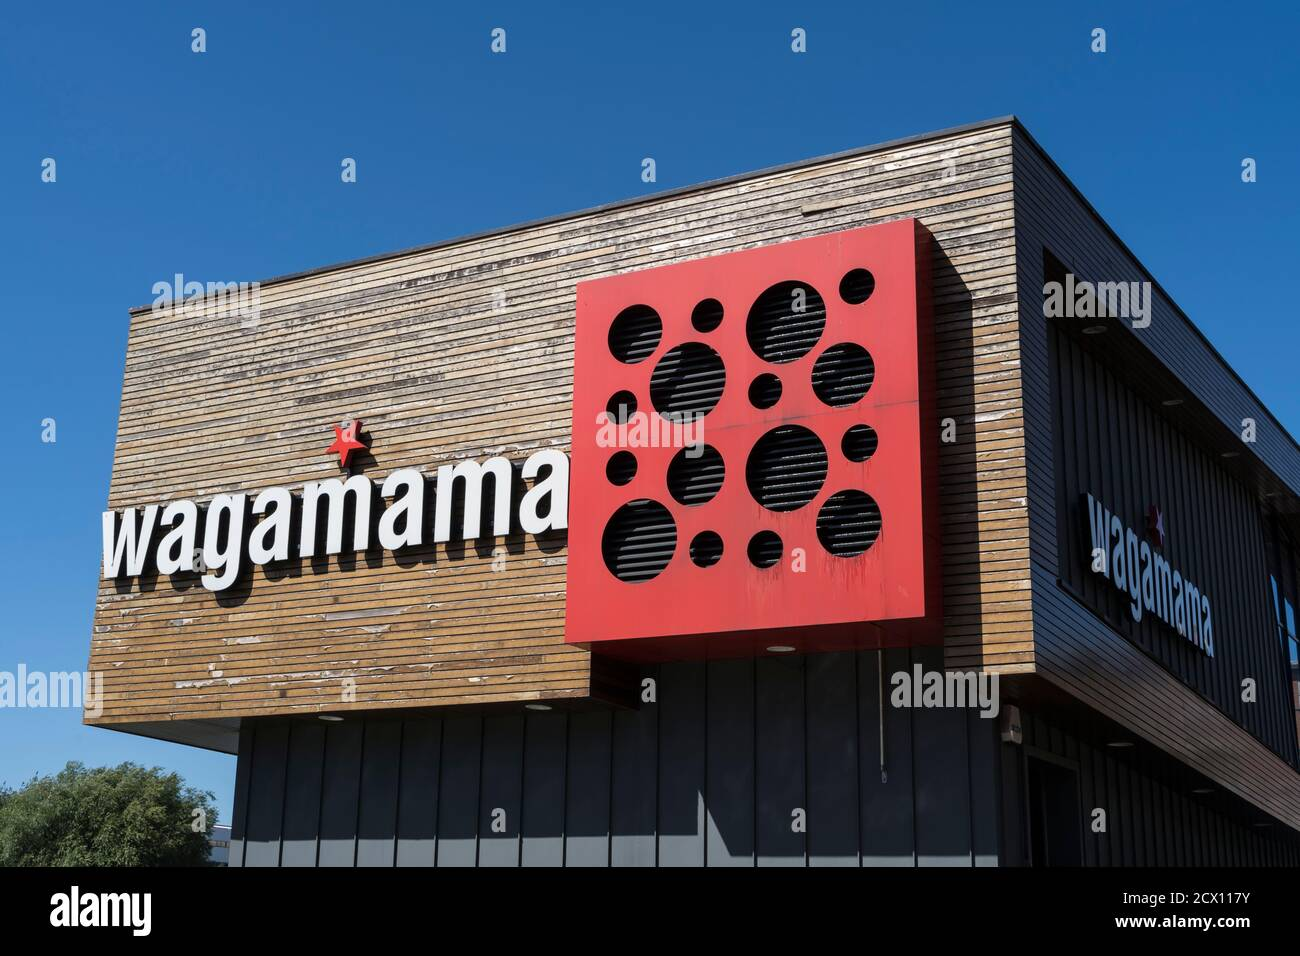 wagamama-restaurant-and-bar-sign-brayford-wharf-north-lincoln-august-2020-2CX117Y.jpg